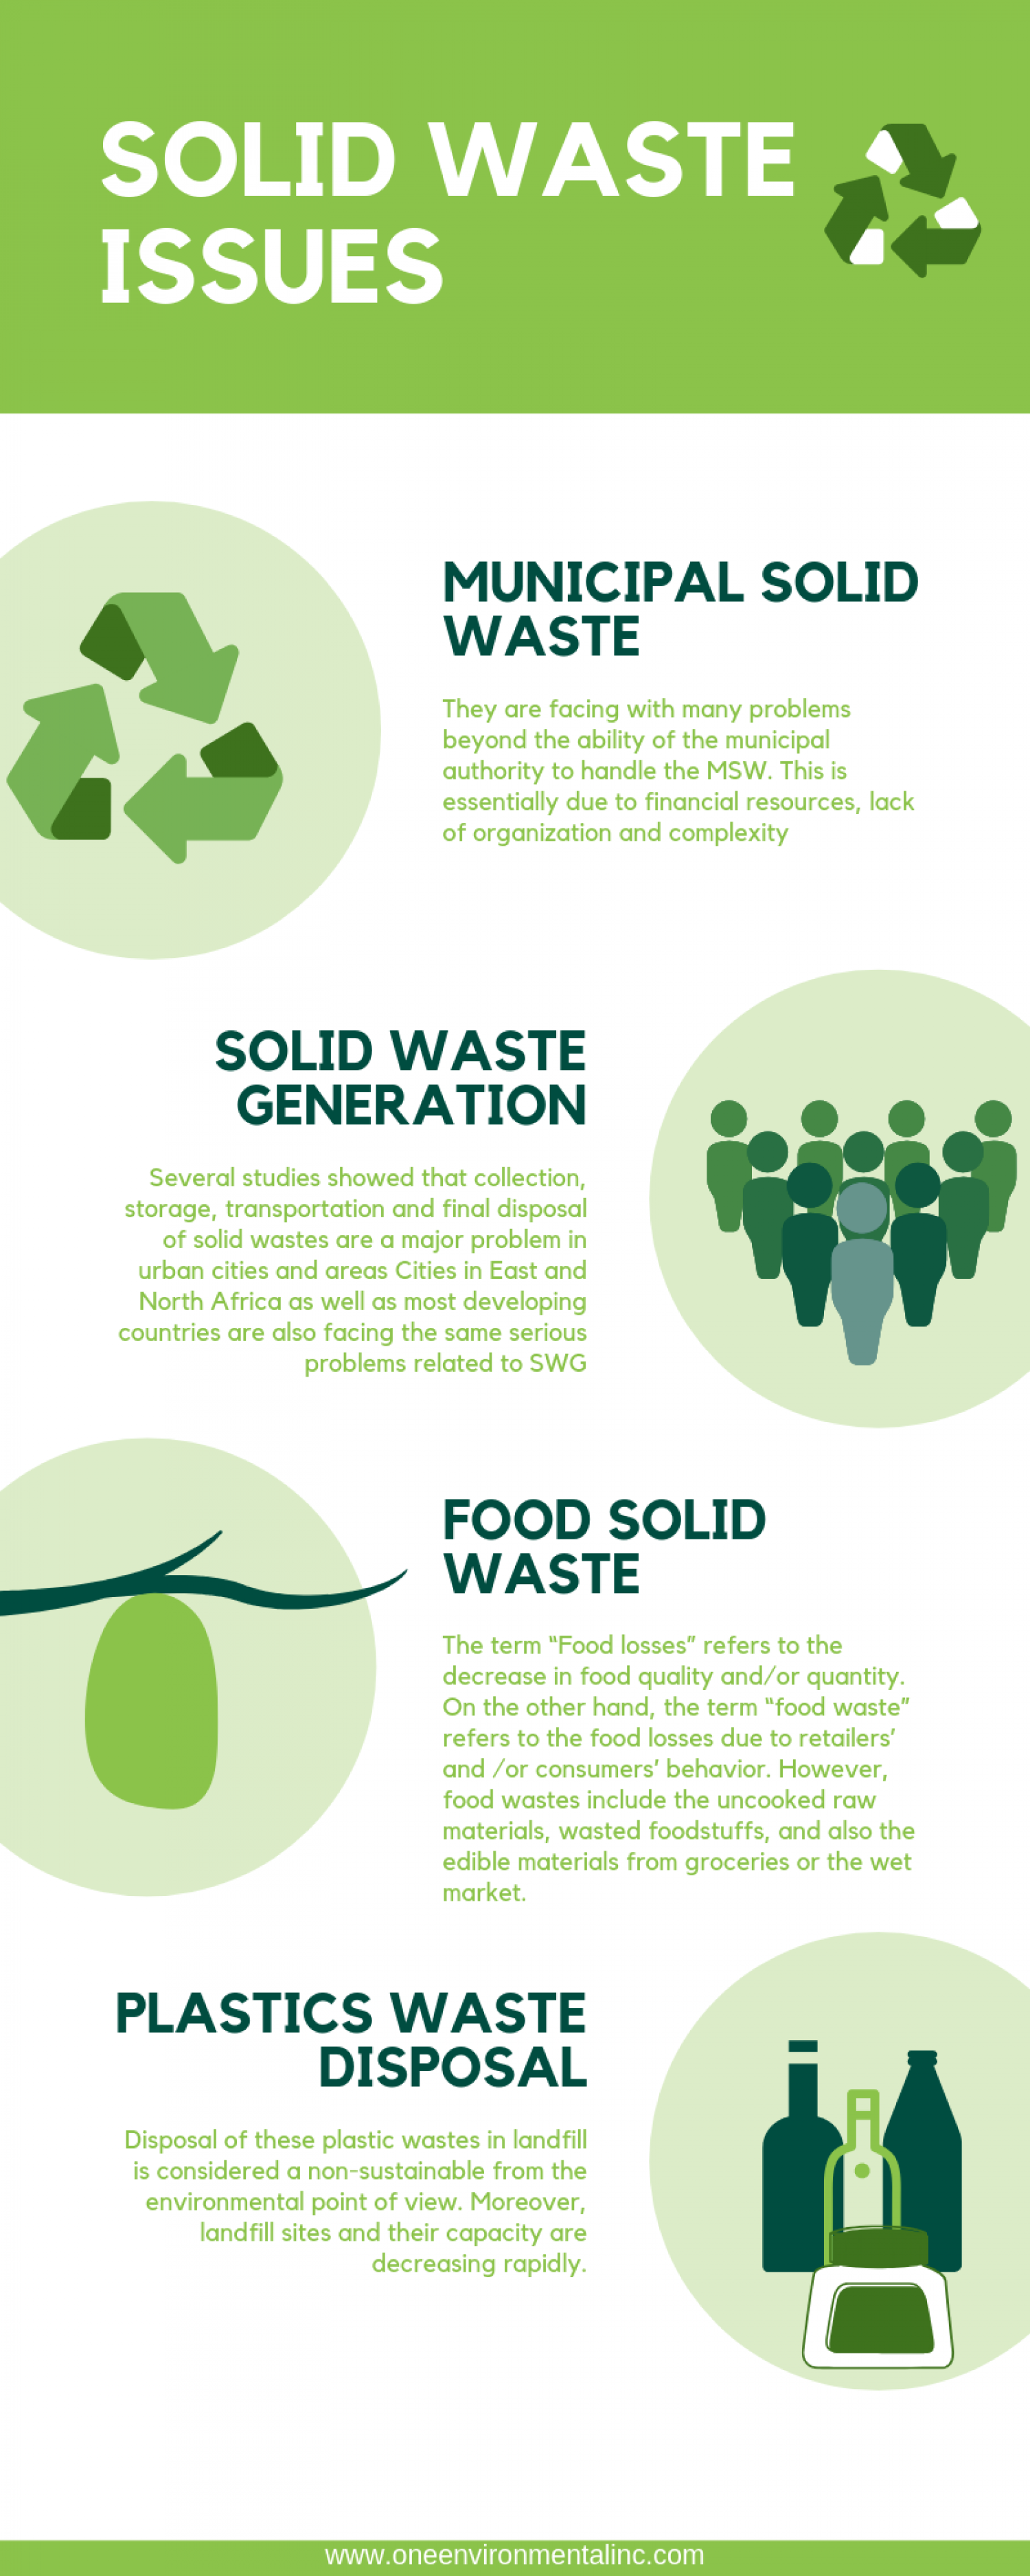 Solid Waste Issues Infographic